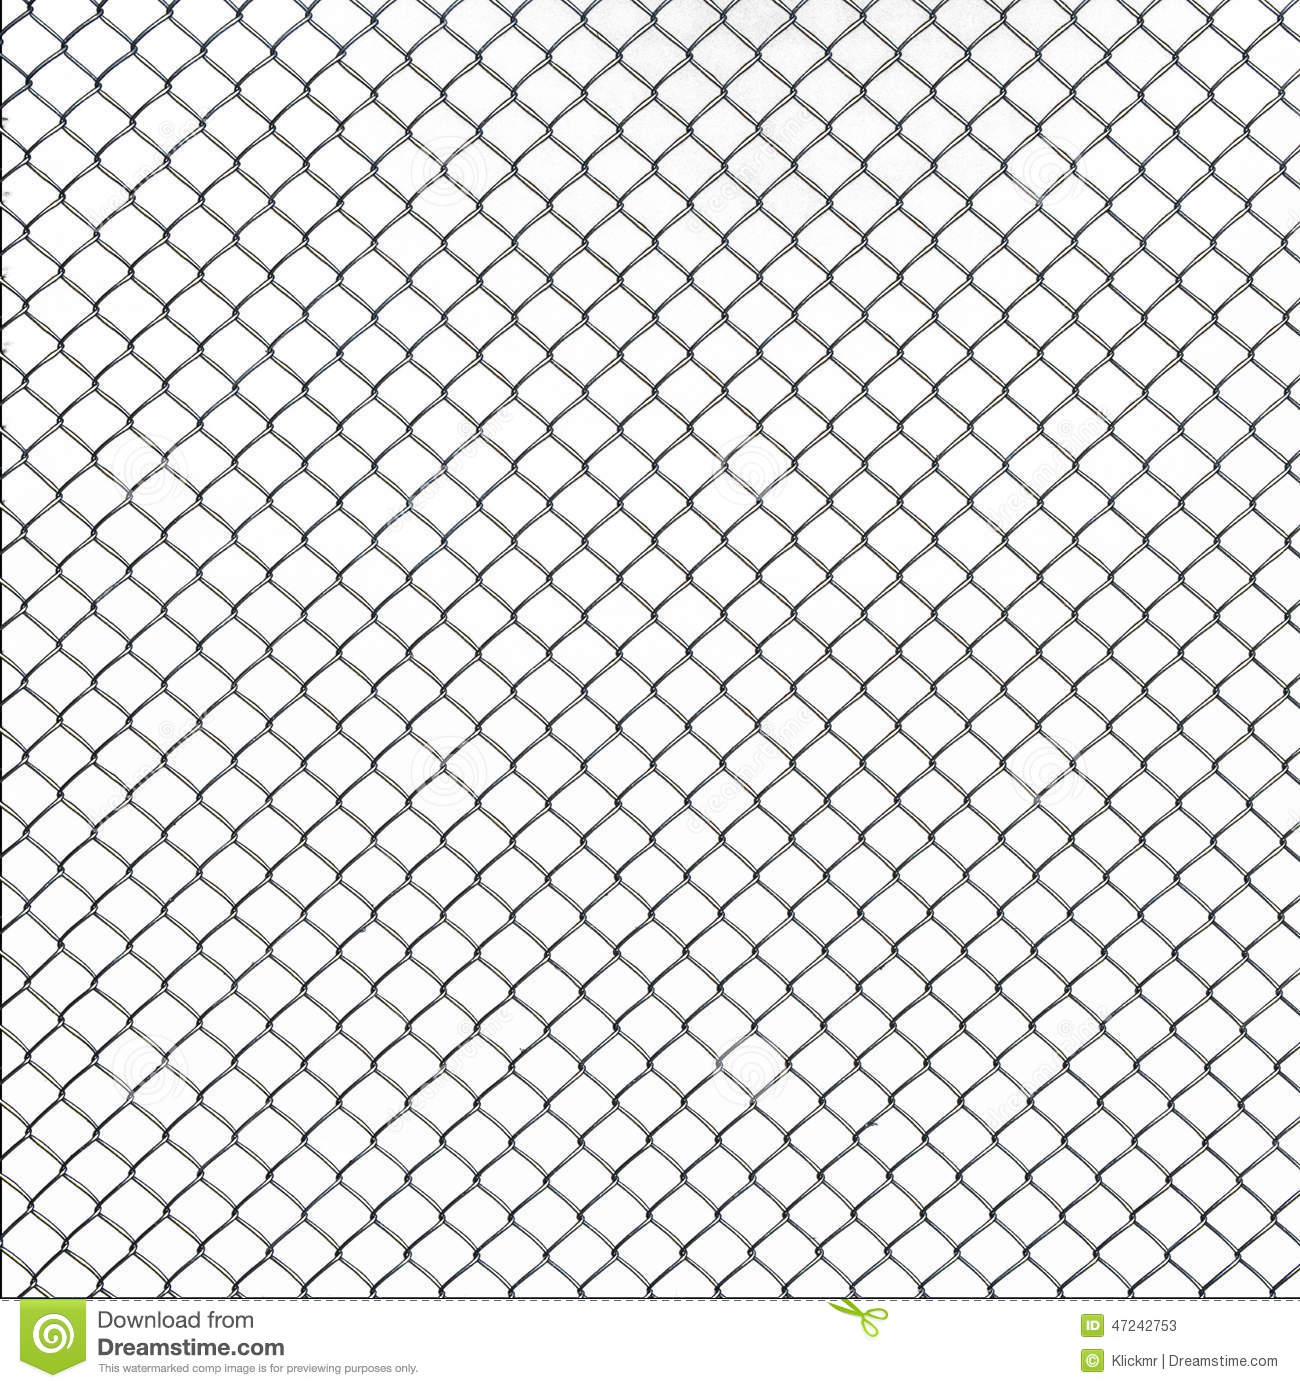 Wire Mesh Texture On White Background Stock Photo 47242753 - Megapixl